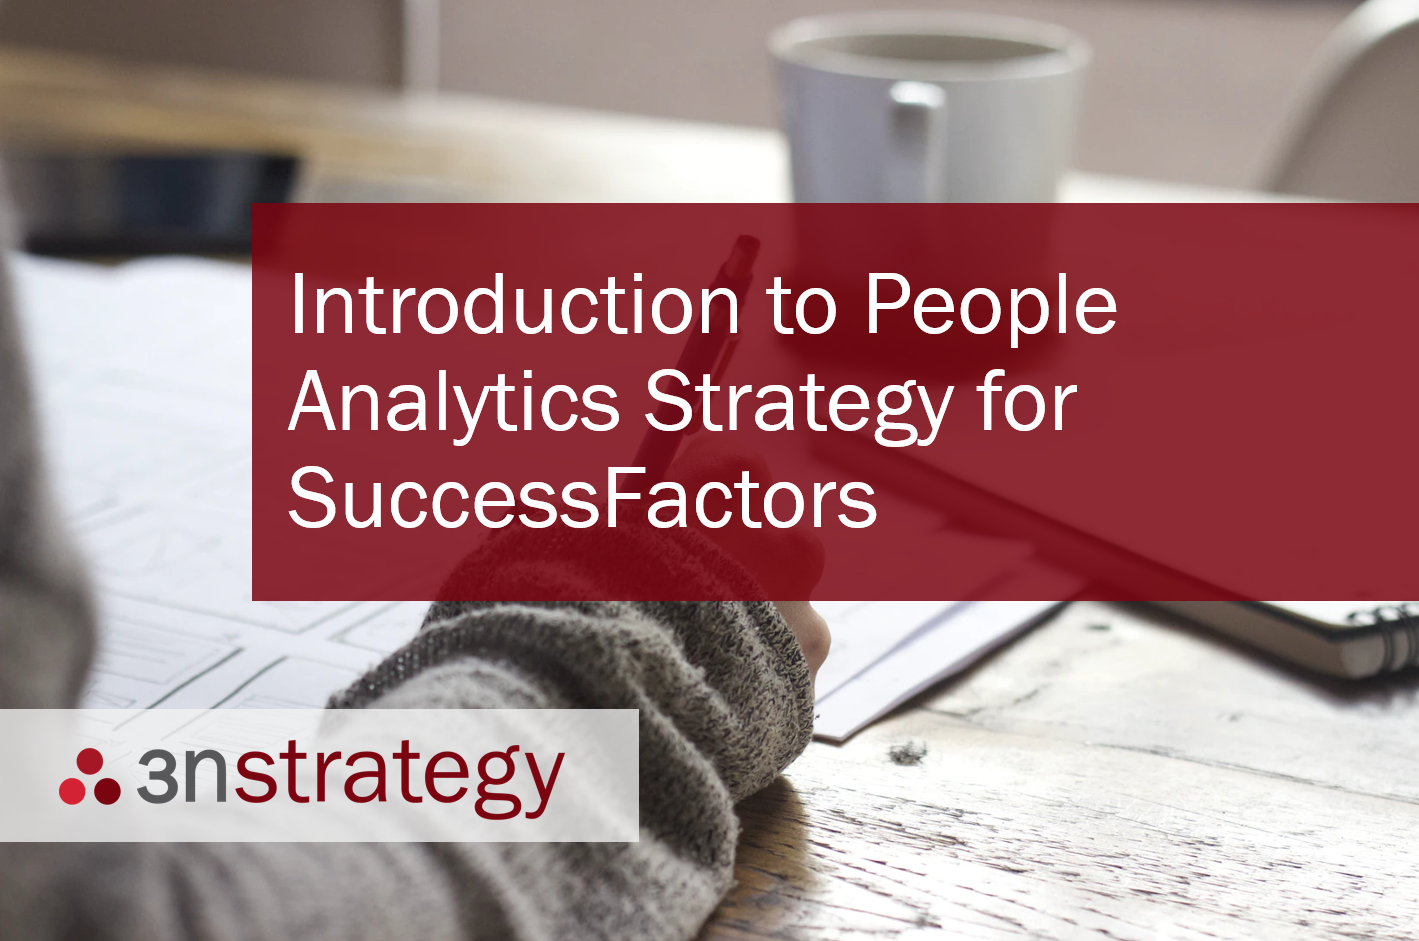 Introduction to People Analytics Strategy for SuccessFactors